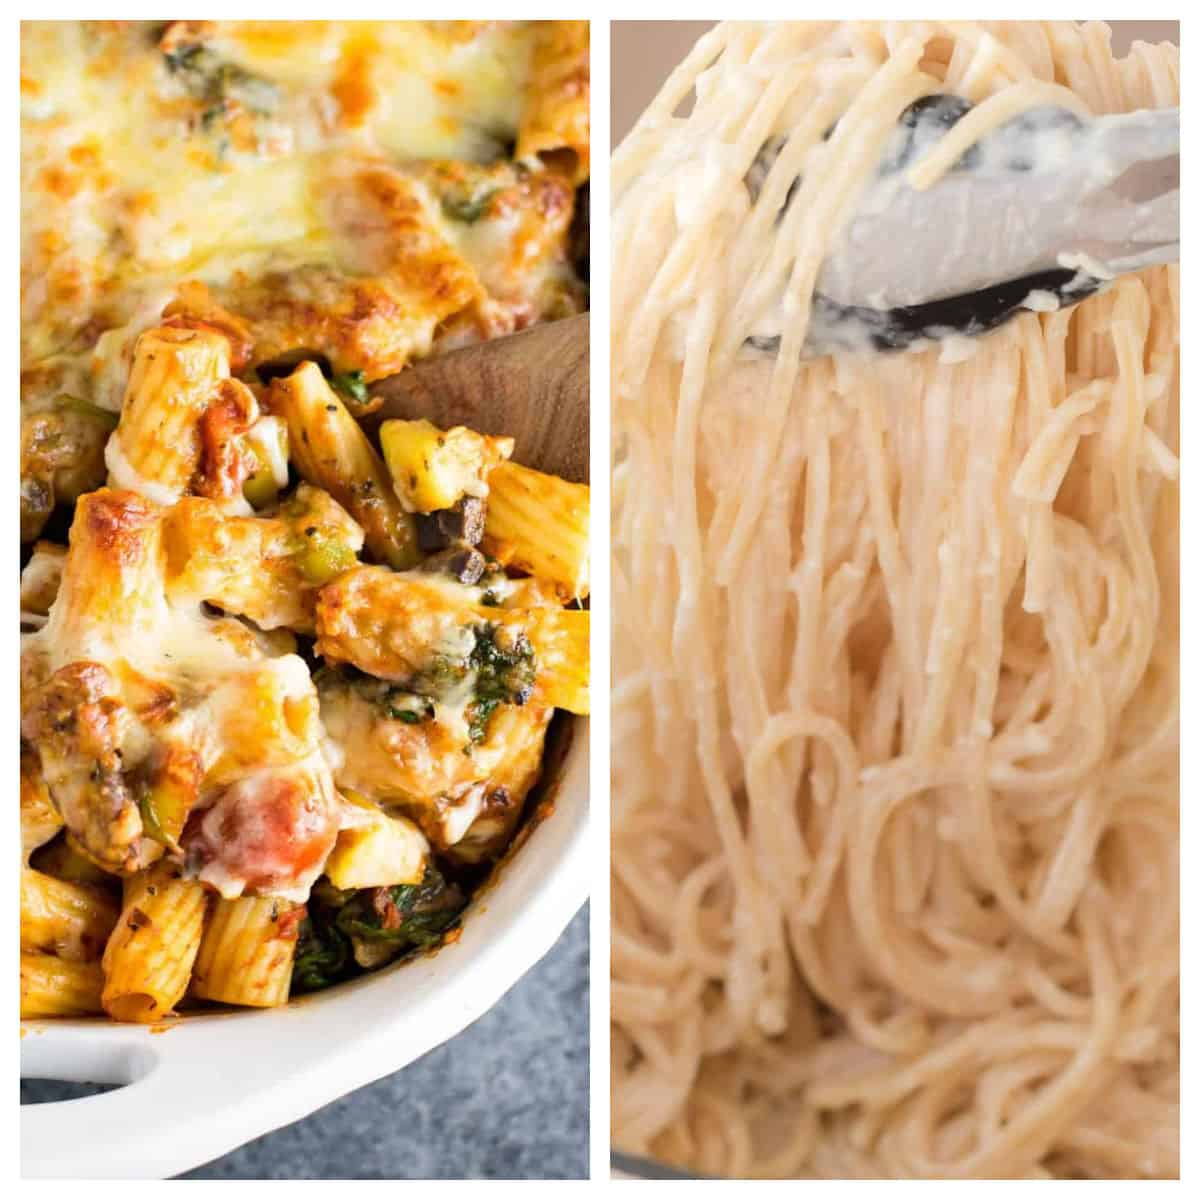 collage image showing veggie lover's pasta bake and cream cheese pasta